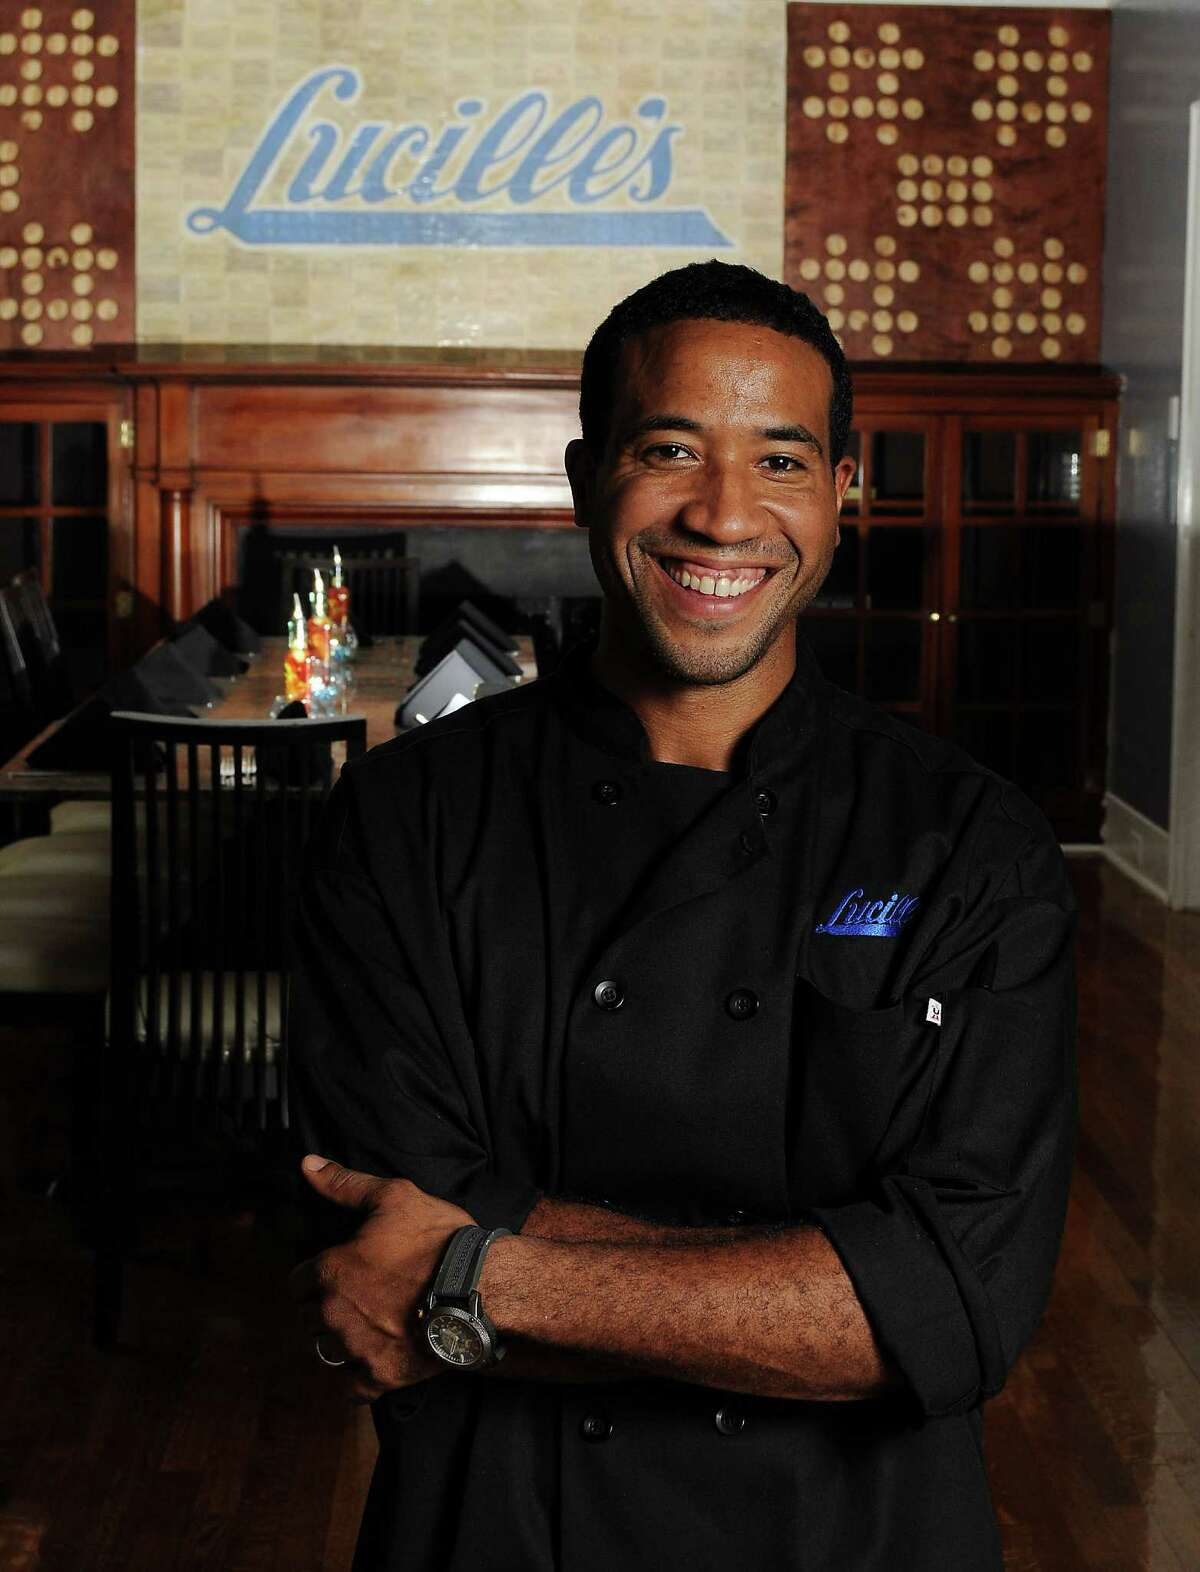 The U.S. Embassy invited chef Chris Williams of Lucille's to bring his signature dishes to Zagreb, Croatia, for a festival.